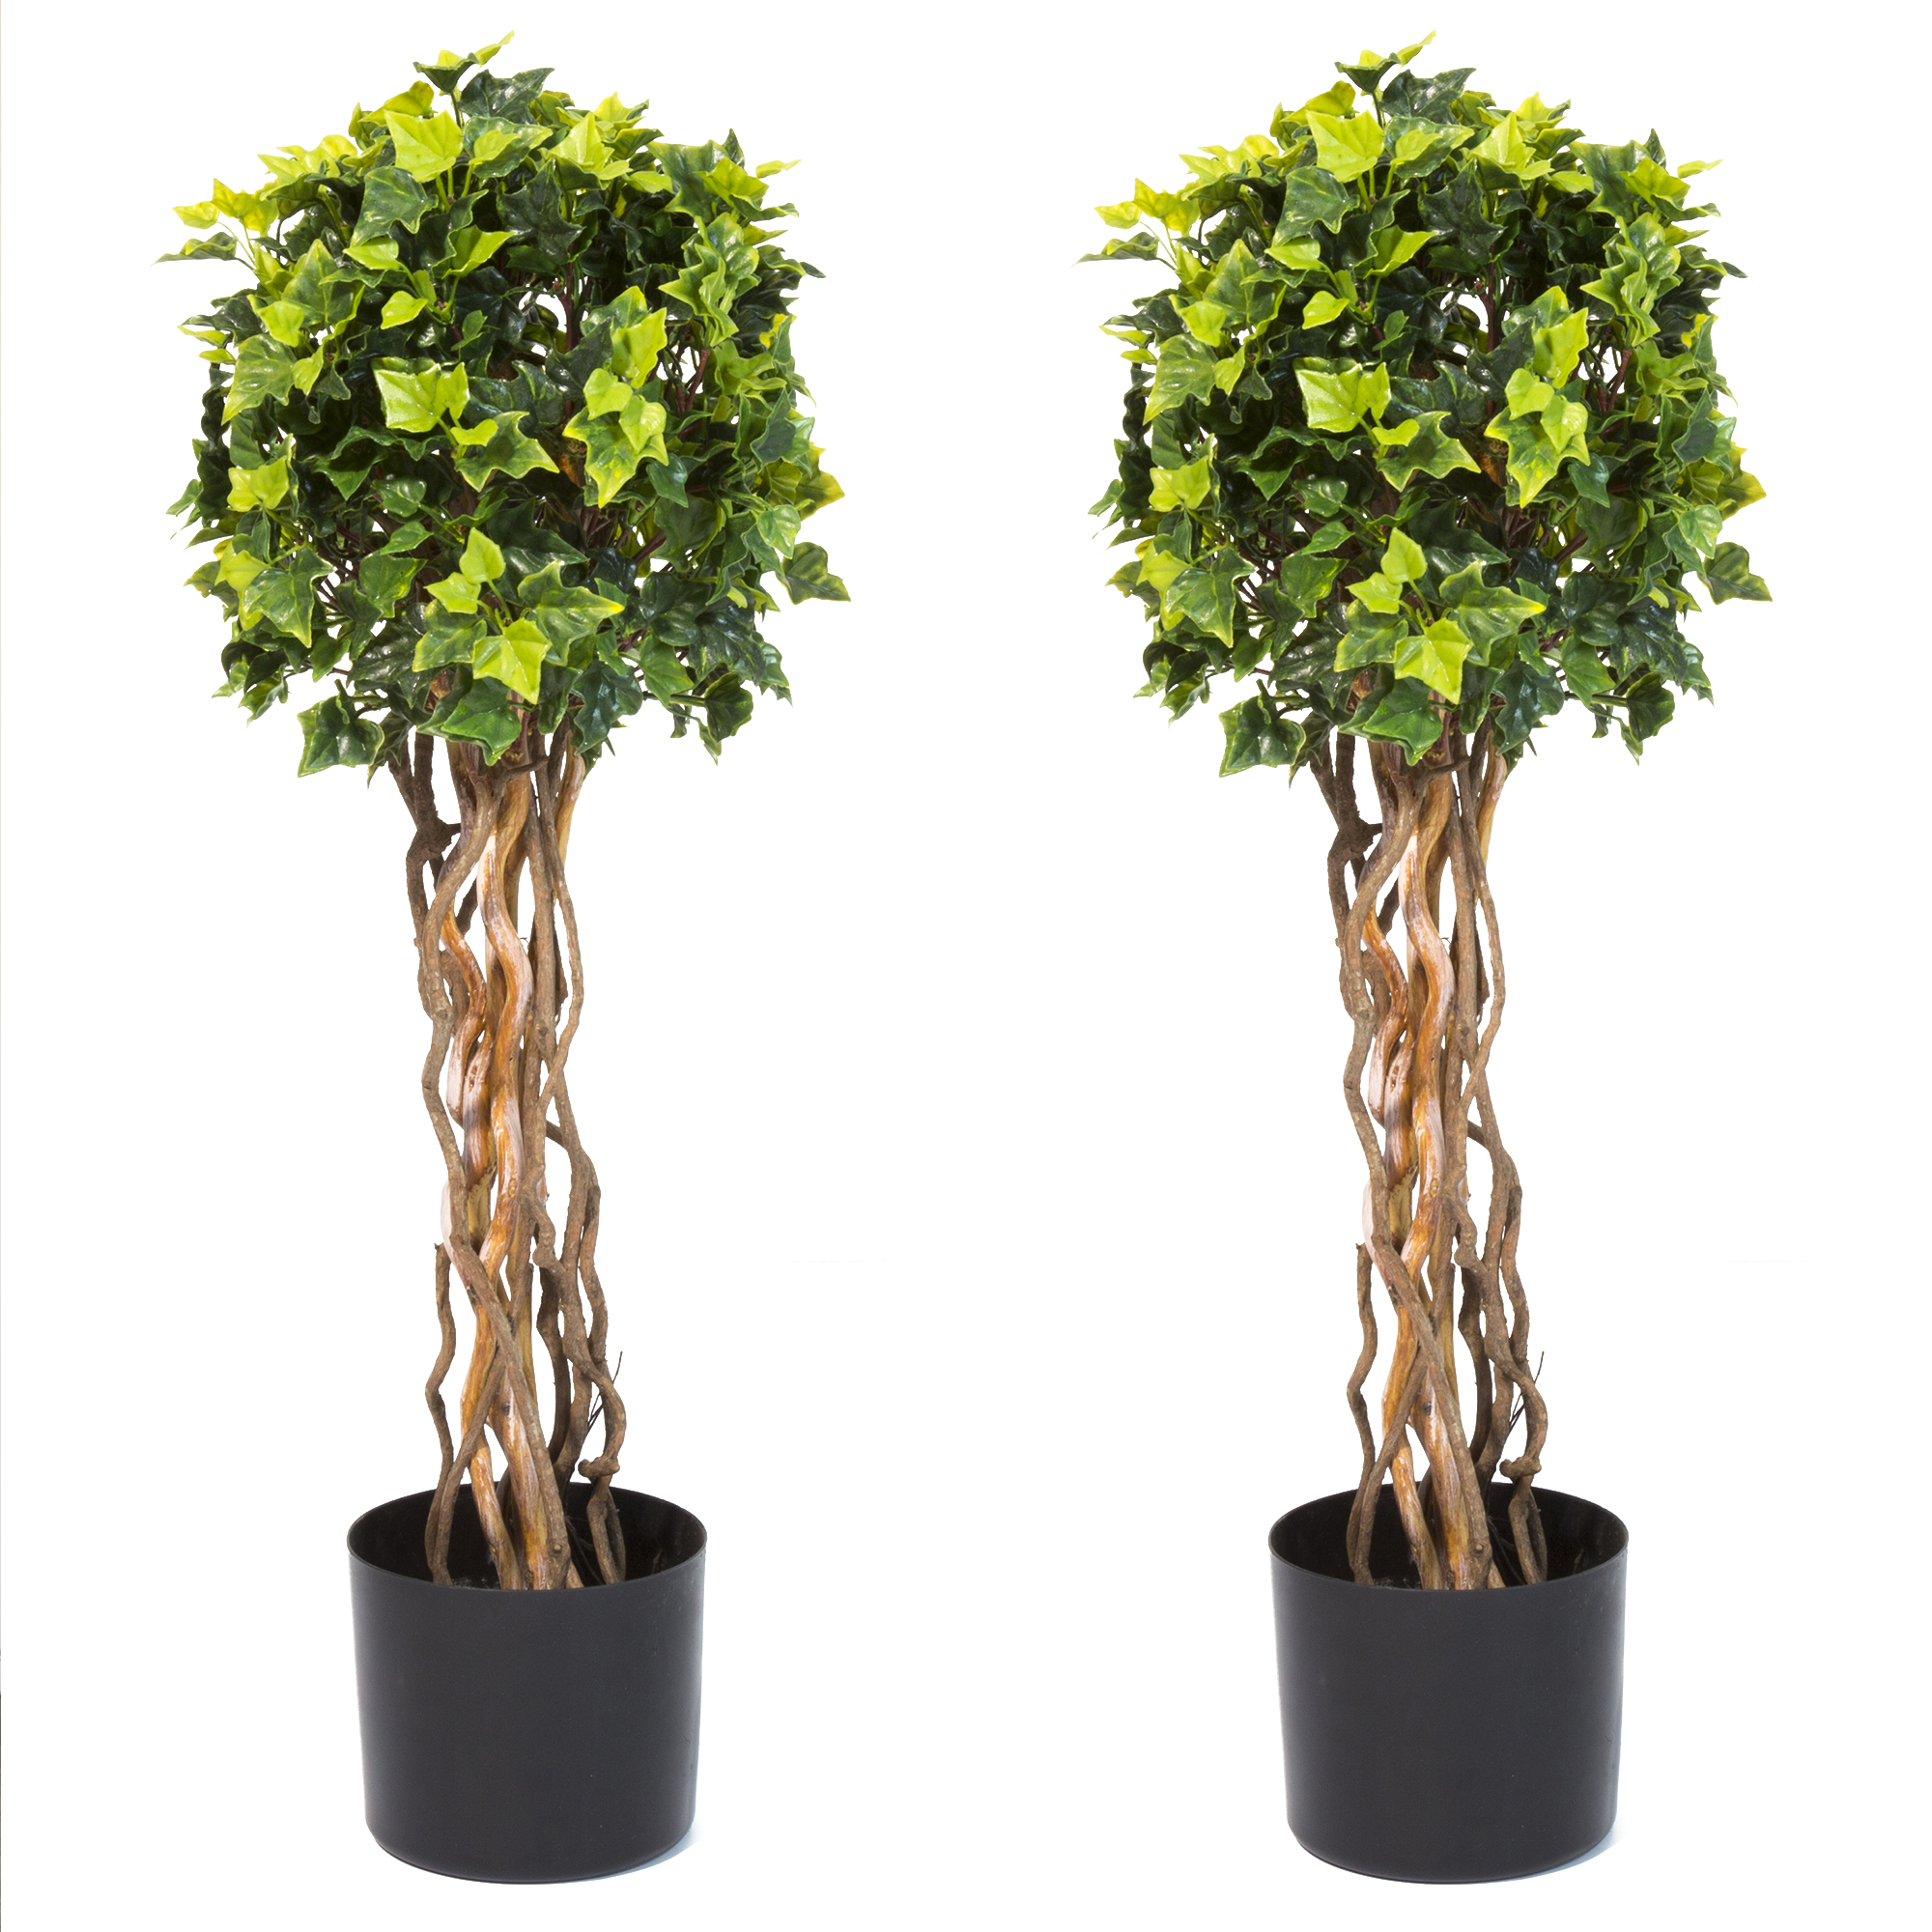 "30"" English Ivy Single Ball Topiary Artificial Tree - Set of 2, Faux Plants by Pure Garden"